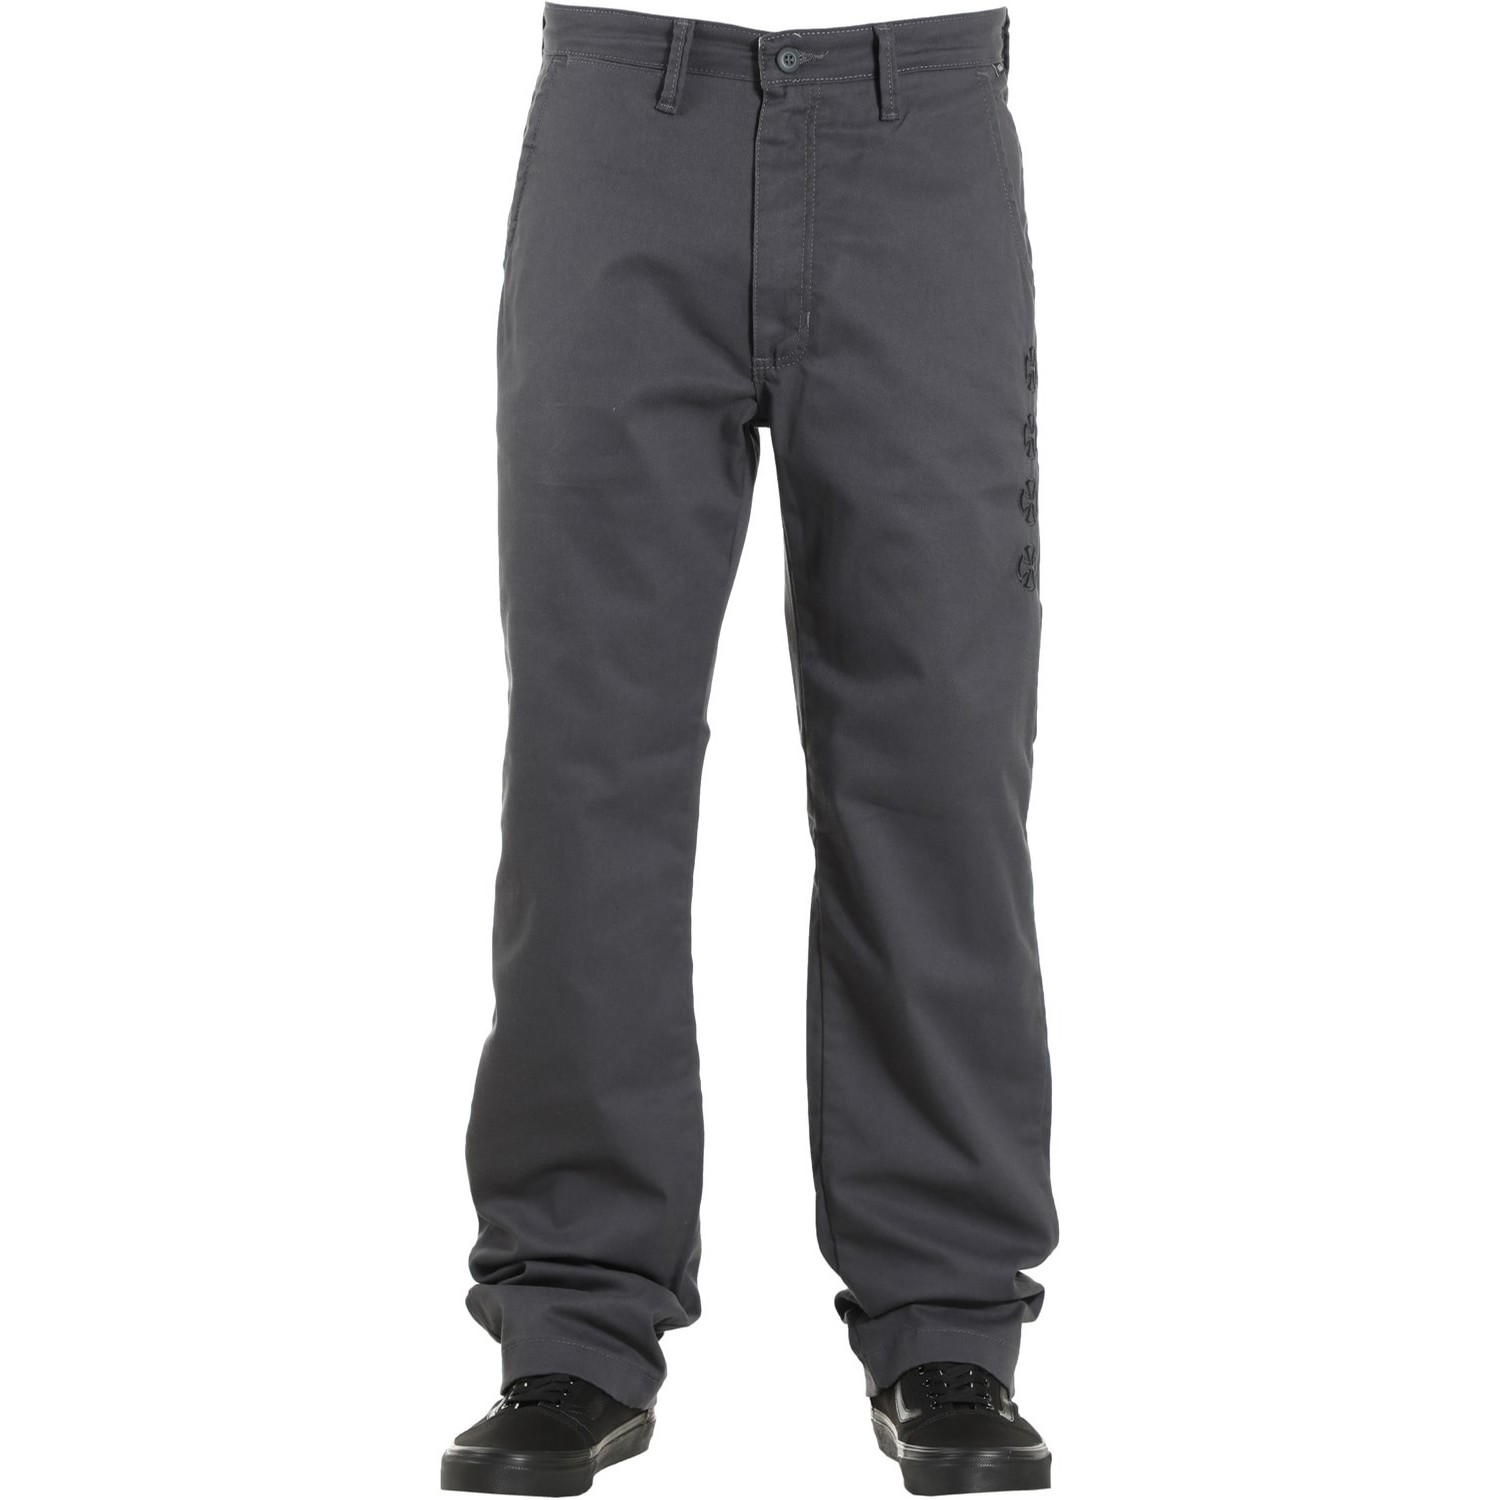 Authentic Chino Pro Pant (Independent) Asphalt